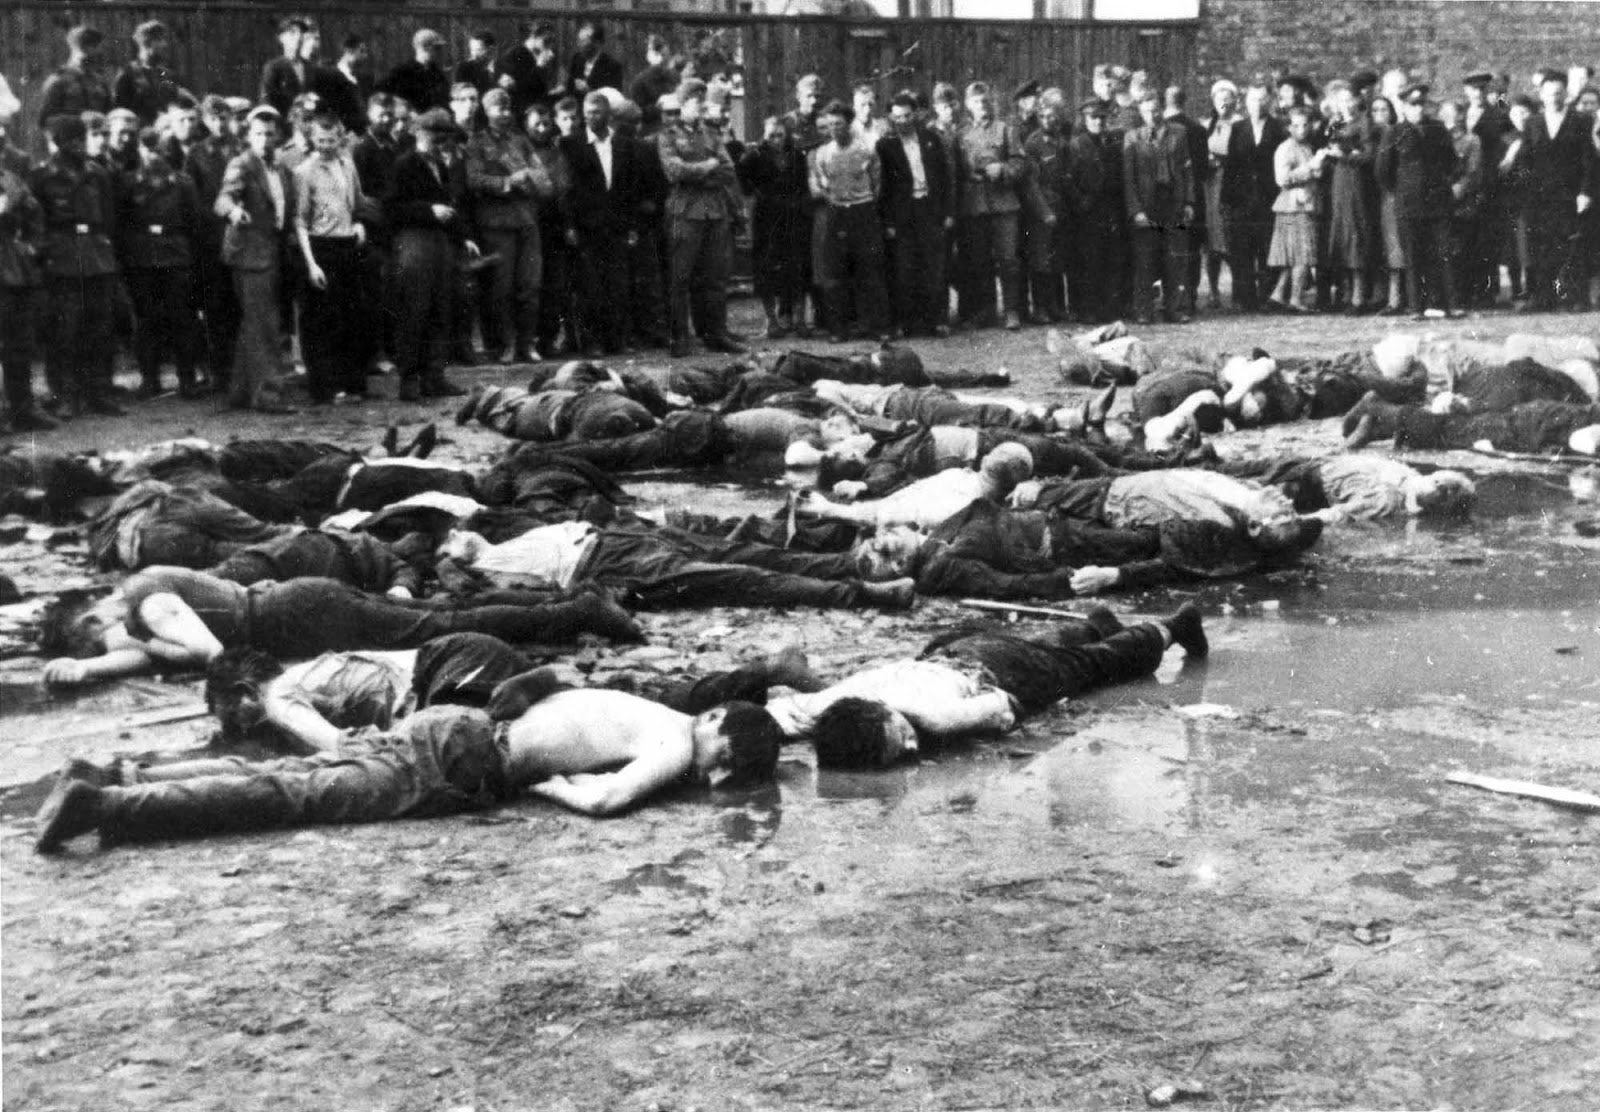 Lithuania wants to erase its Holocaust role. That's deplorable